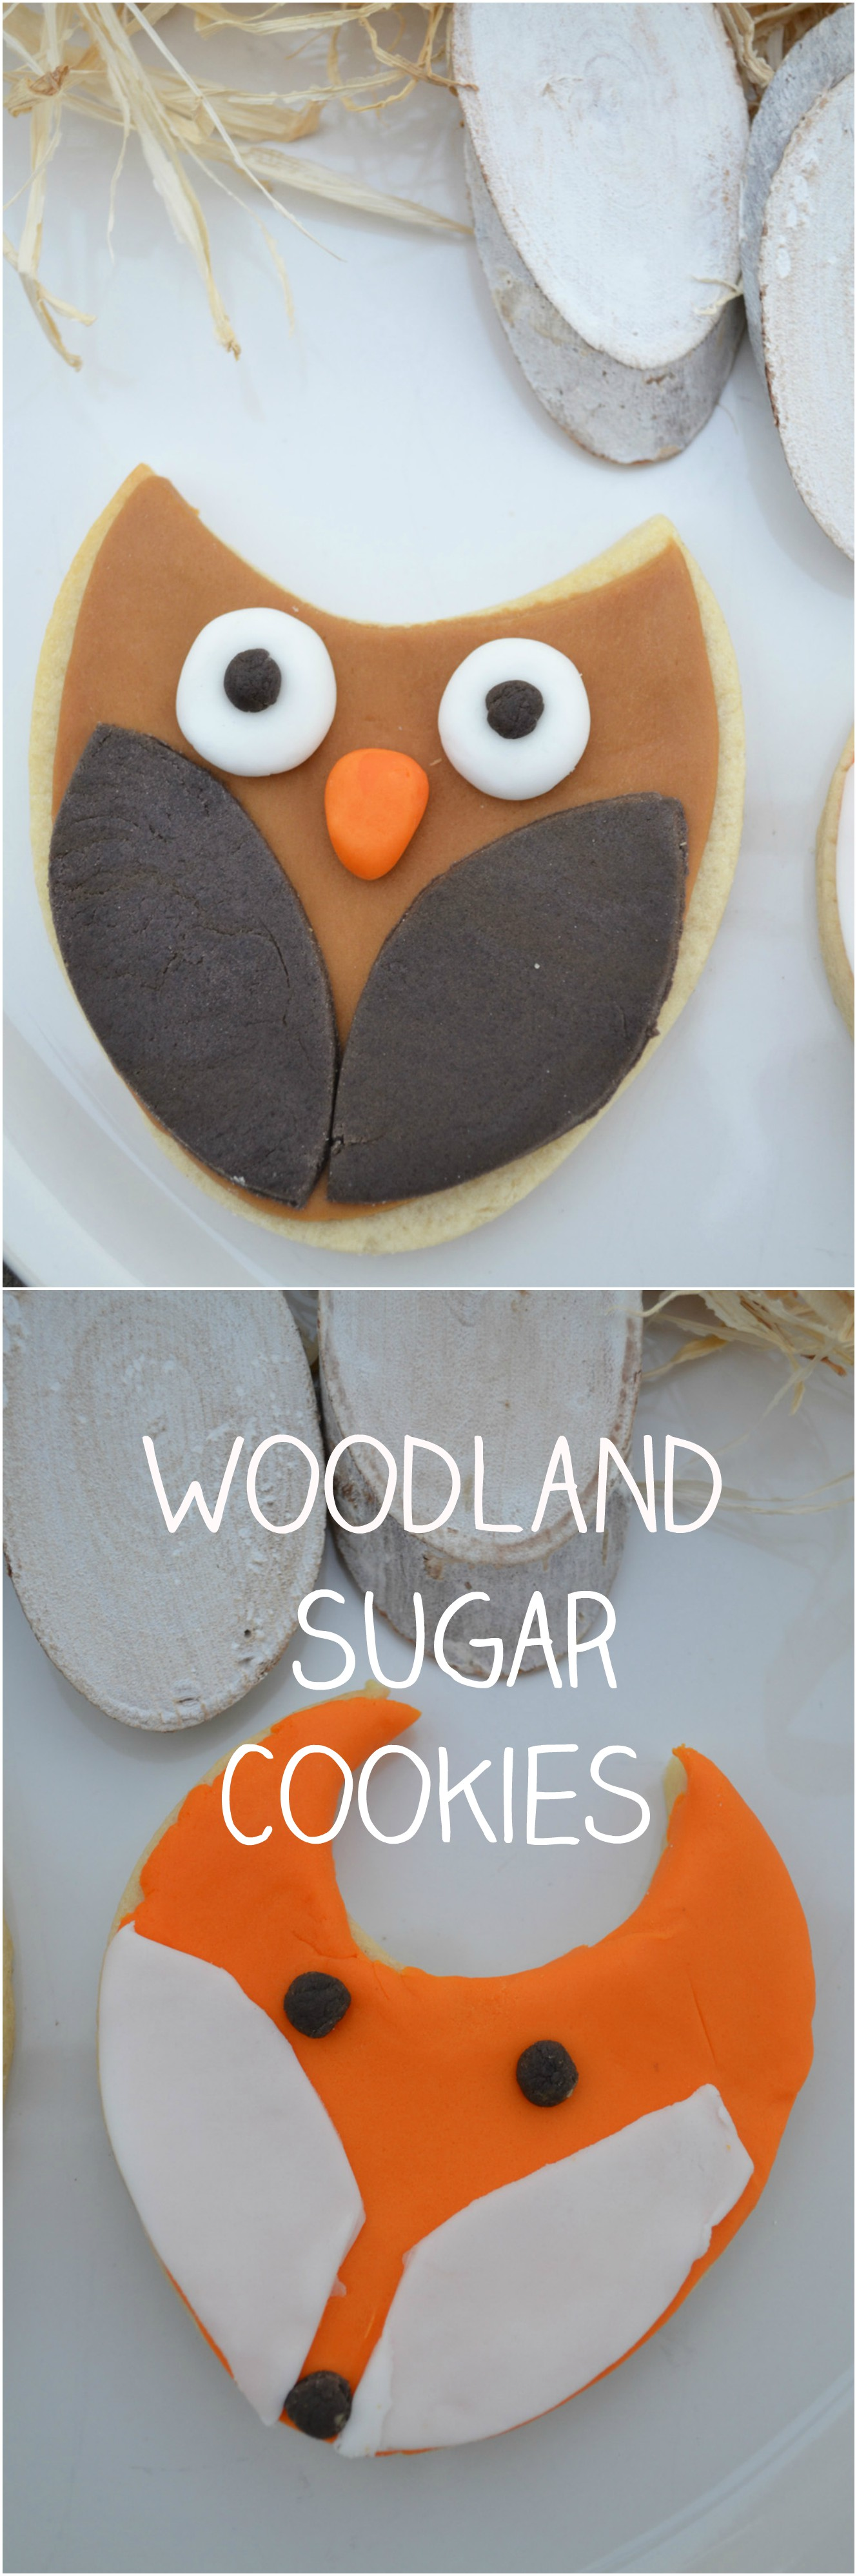 Woodland Sugar Cookies Tutorial